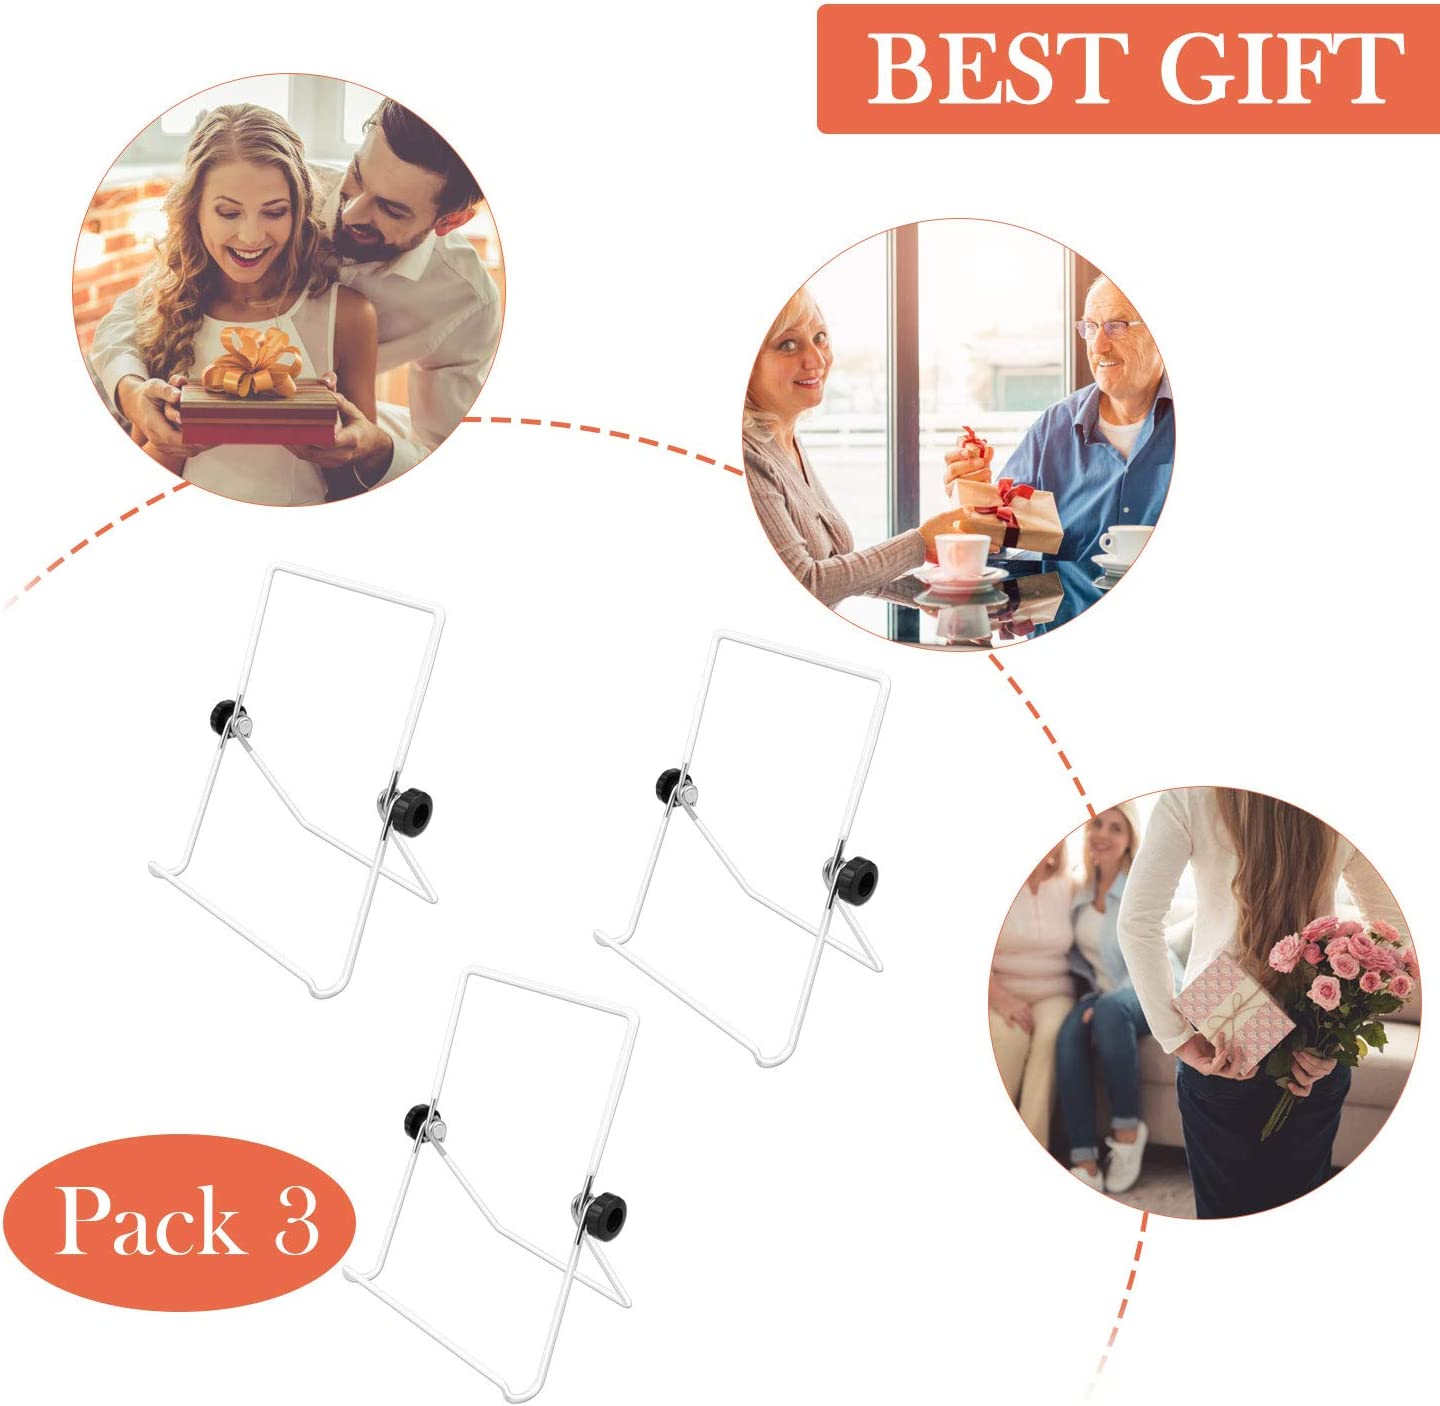 Black Plates TUOKEOGO 3 Pack Easel Picture Frame Stand Adjustable Foldable Tablet Iron Display Holder Stand for Displaying Photos Cookbooks,Kindle,iPad,Tablet